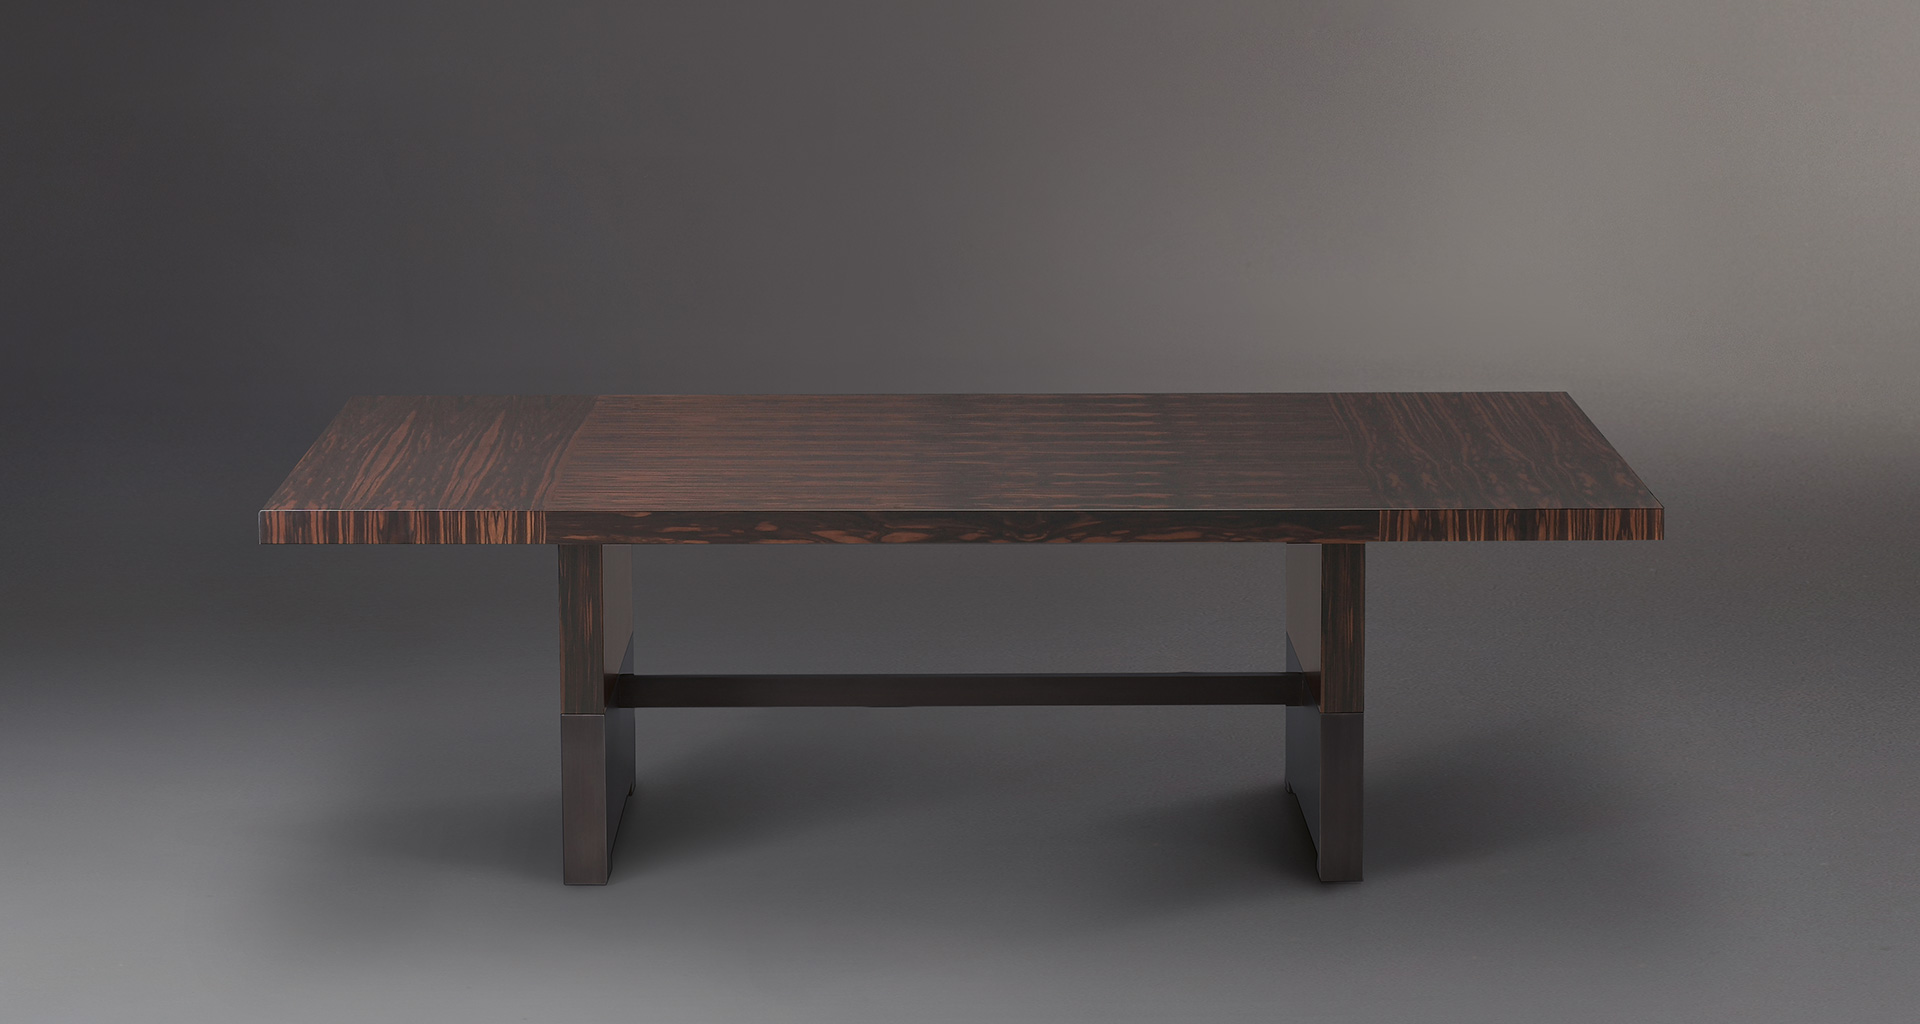 Bamboo is a wooden dining table with a bronze base, from Promemoria's catalogue | Promemoria